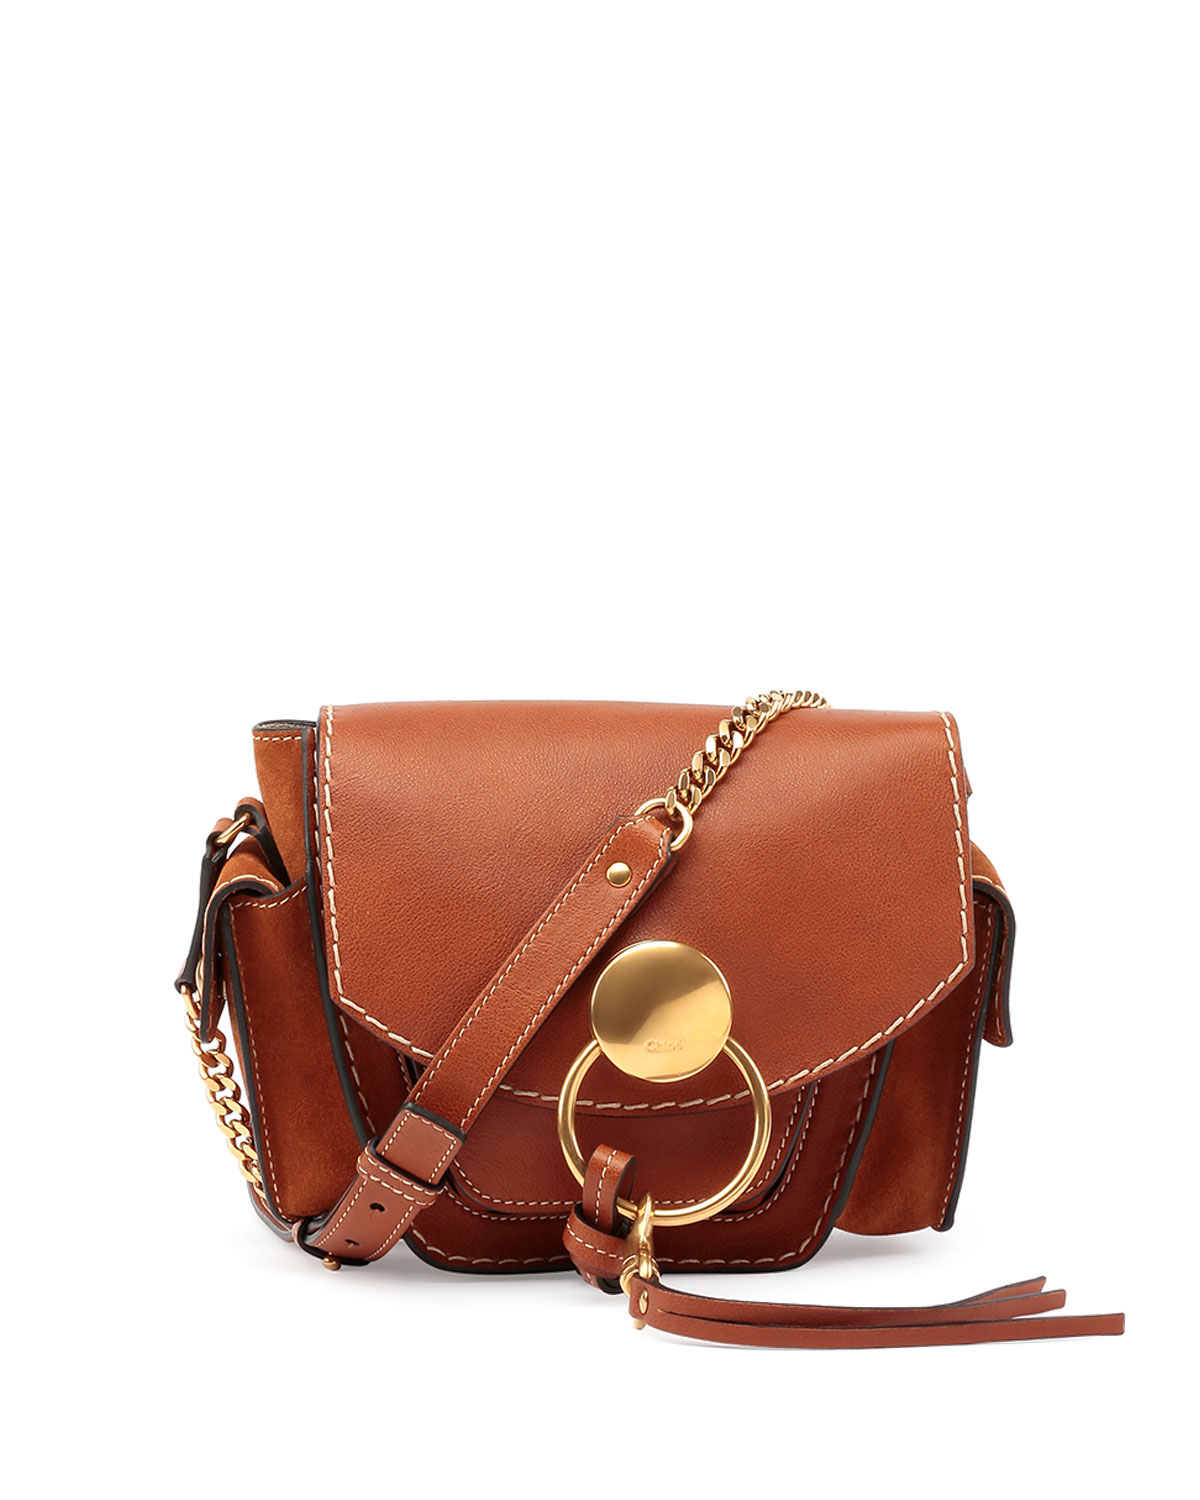 chloe jodie small leather and suede shoulder bag